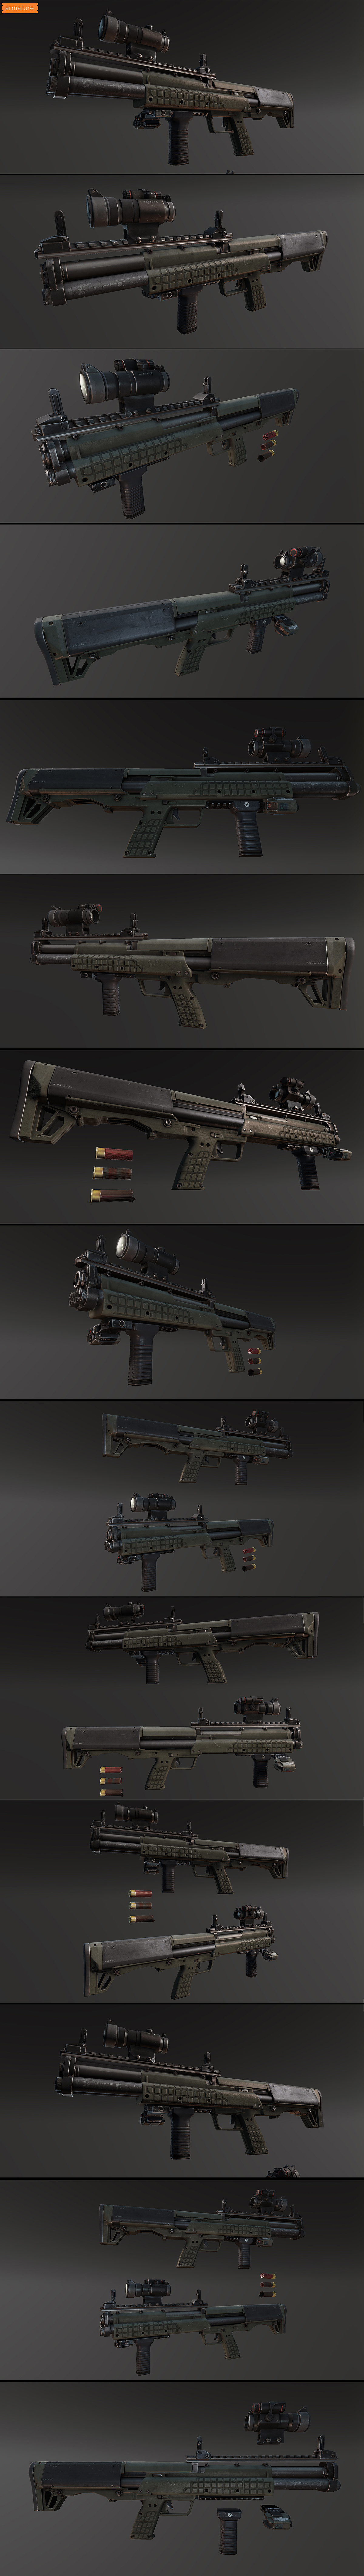 ksg_bullpup_textured_high.jpg